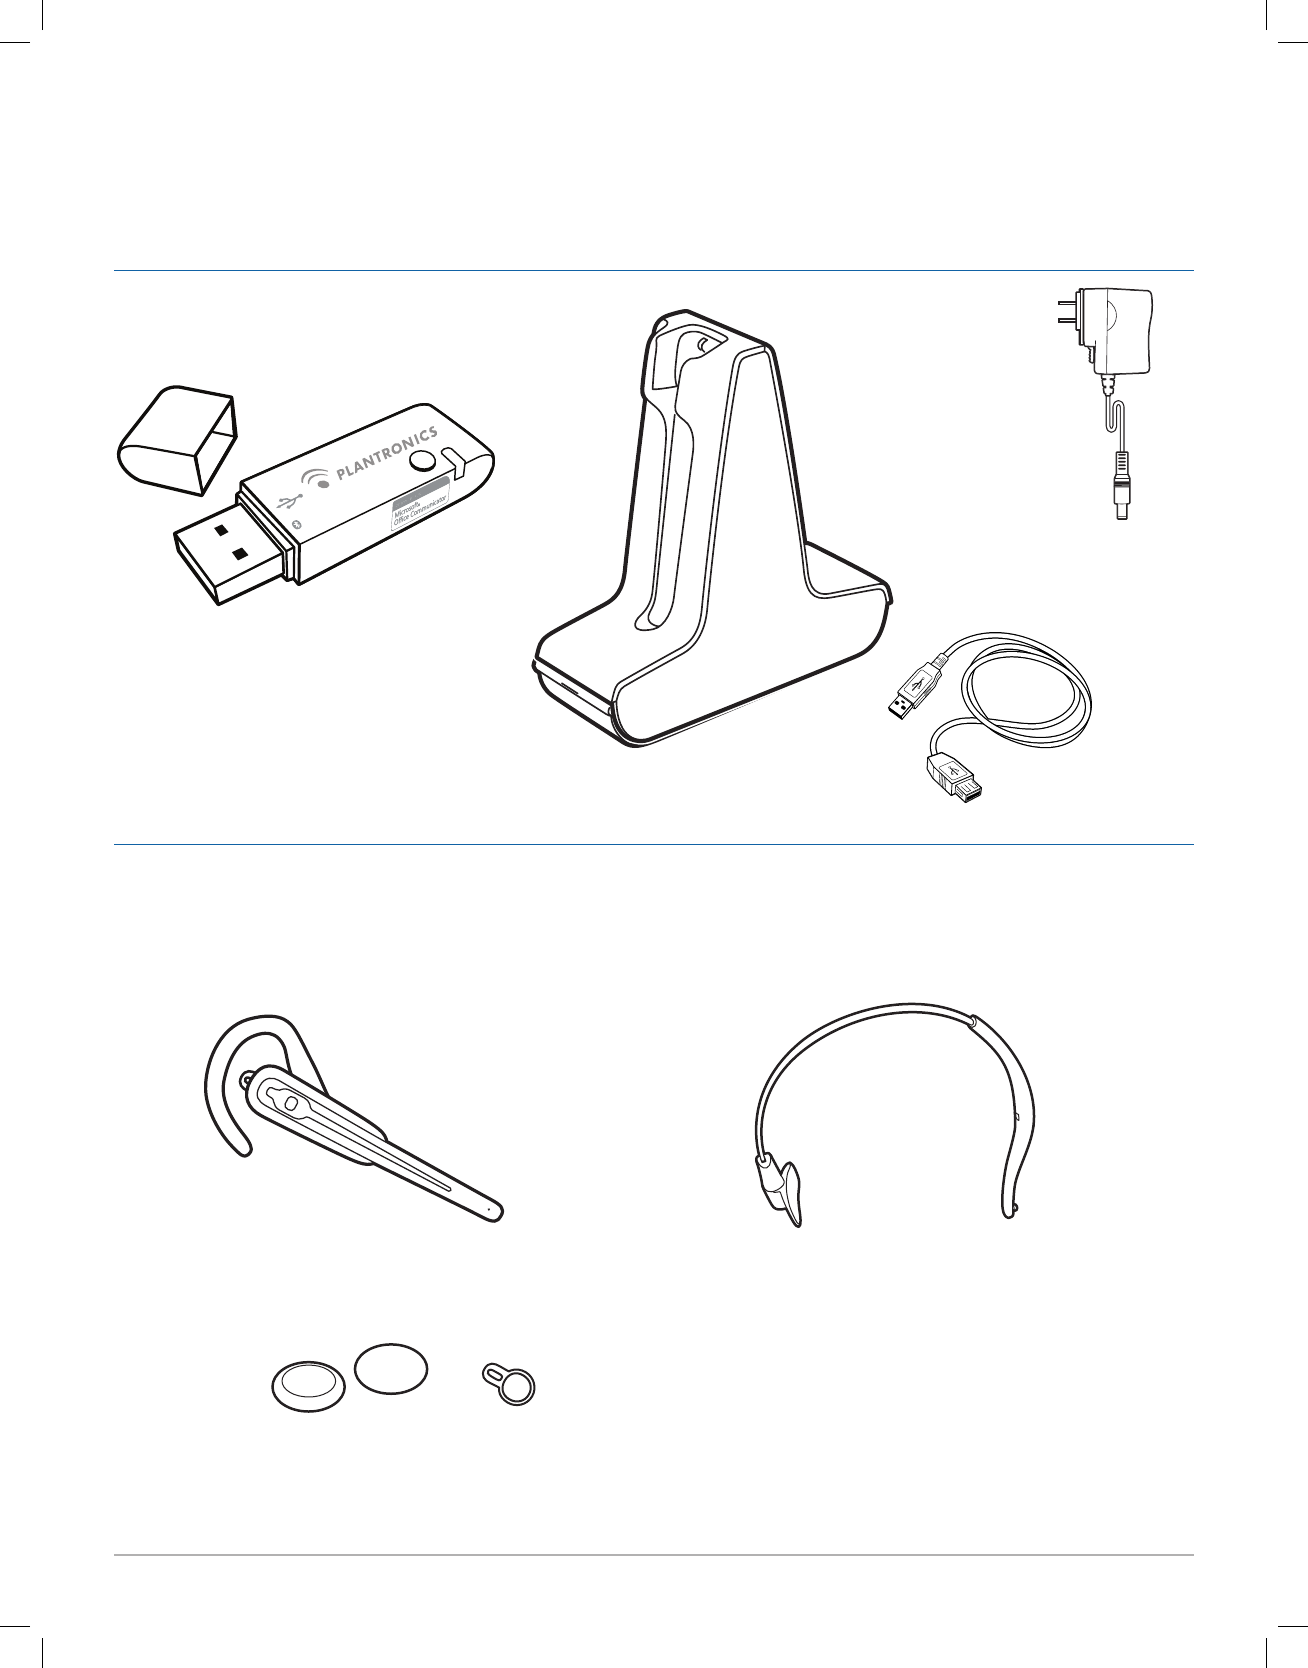 Plantronics WH100B Bluetooth Headset User Manual